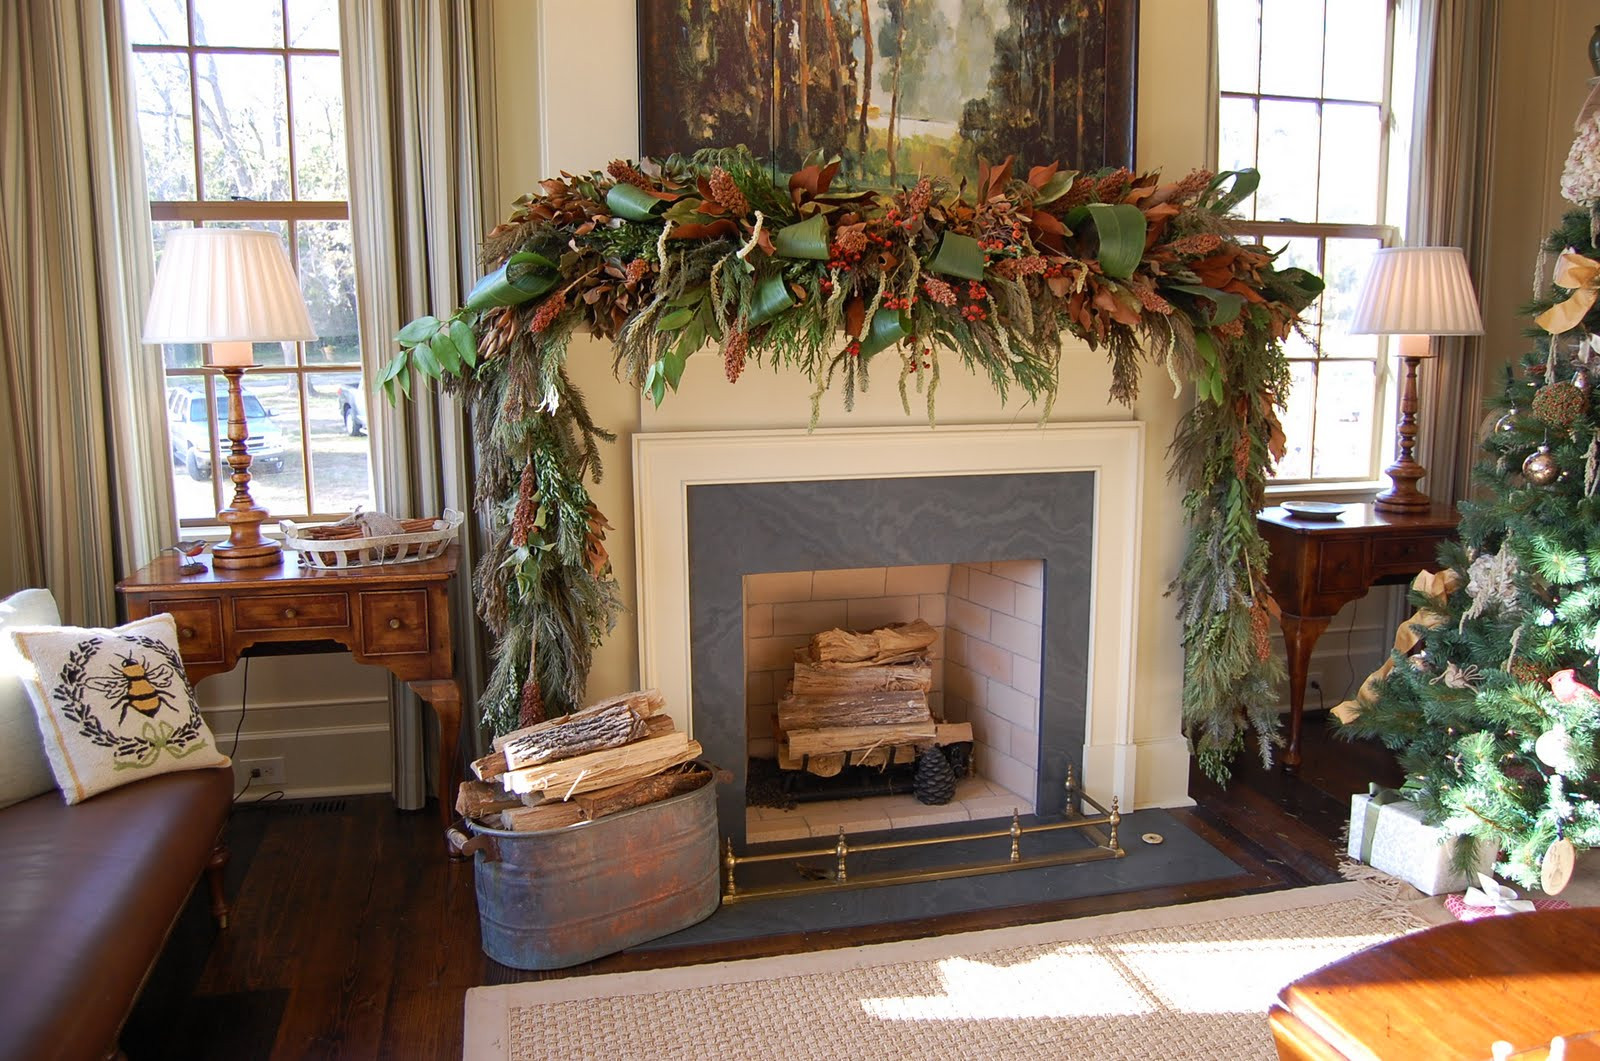 Christmas Decoration Fireplace Mantel  Christmas Mantel Decorated with Natural Greenery in